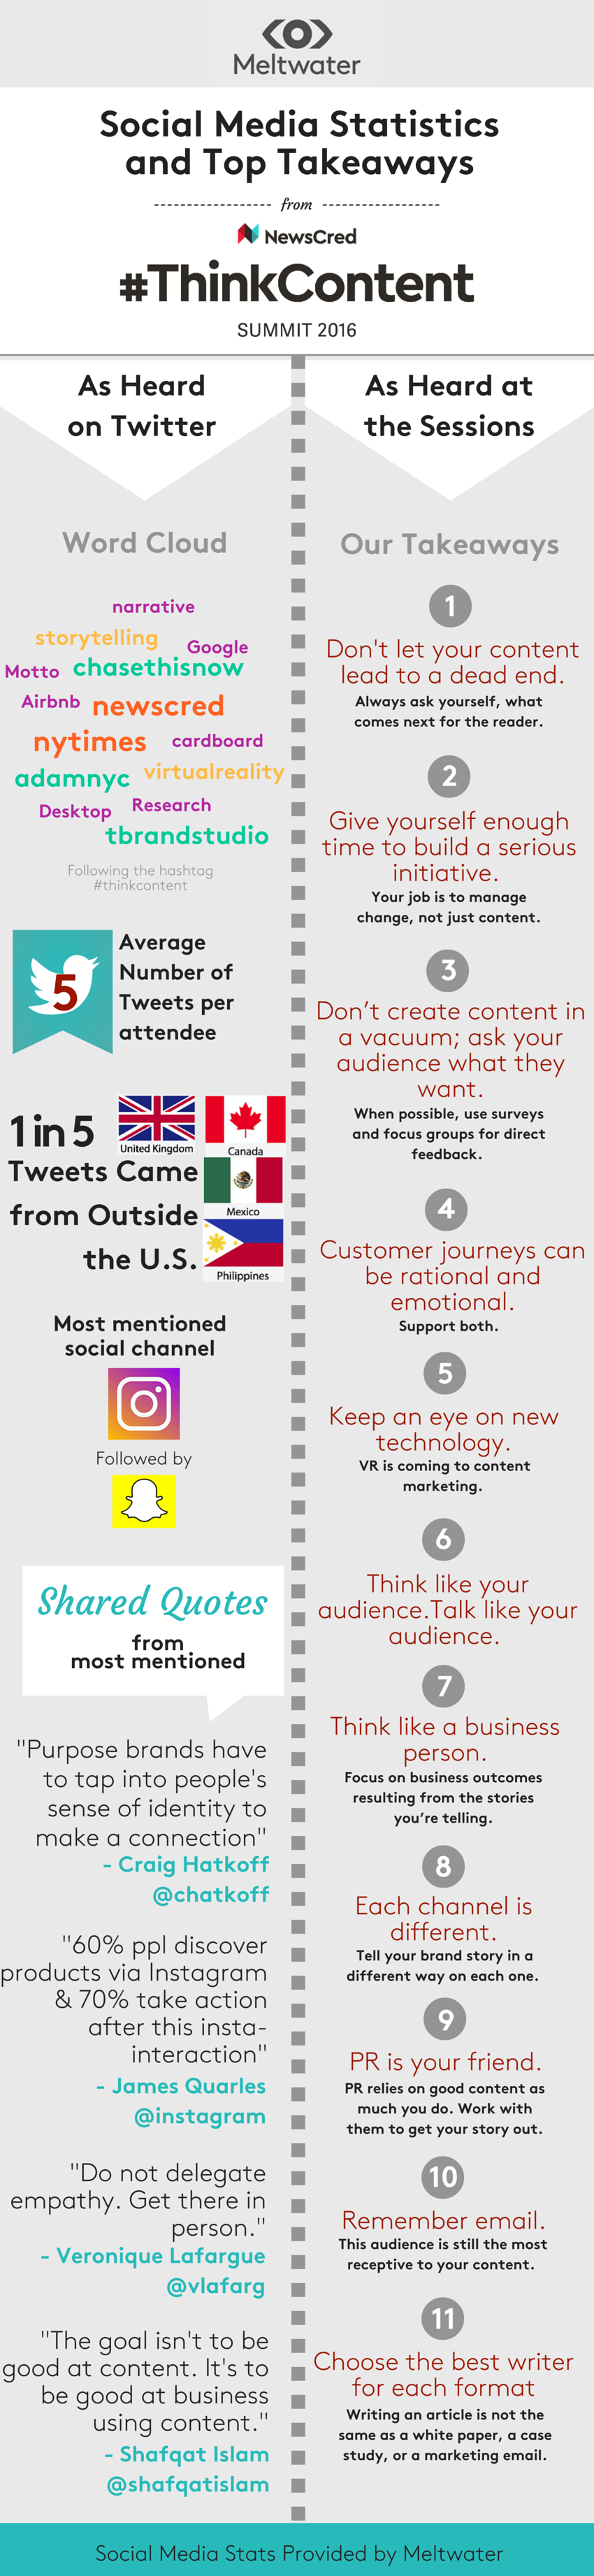 ThinkContent-Infographic-Meltwater.png